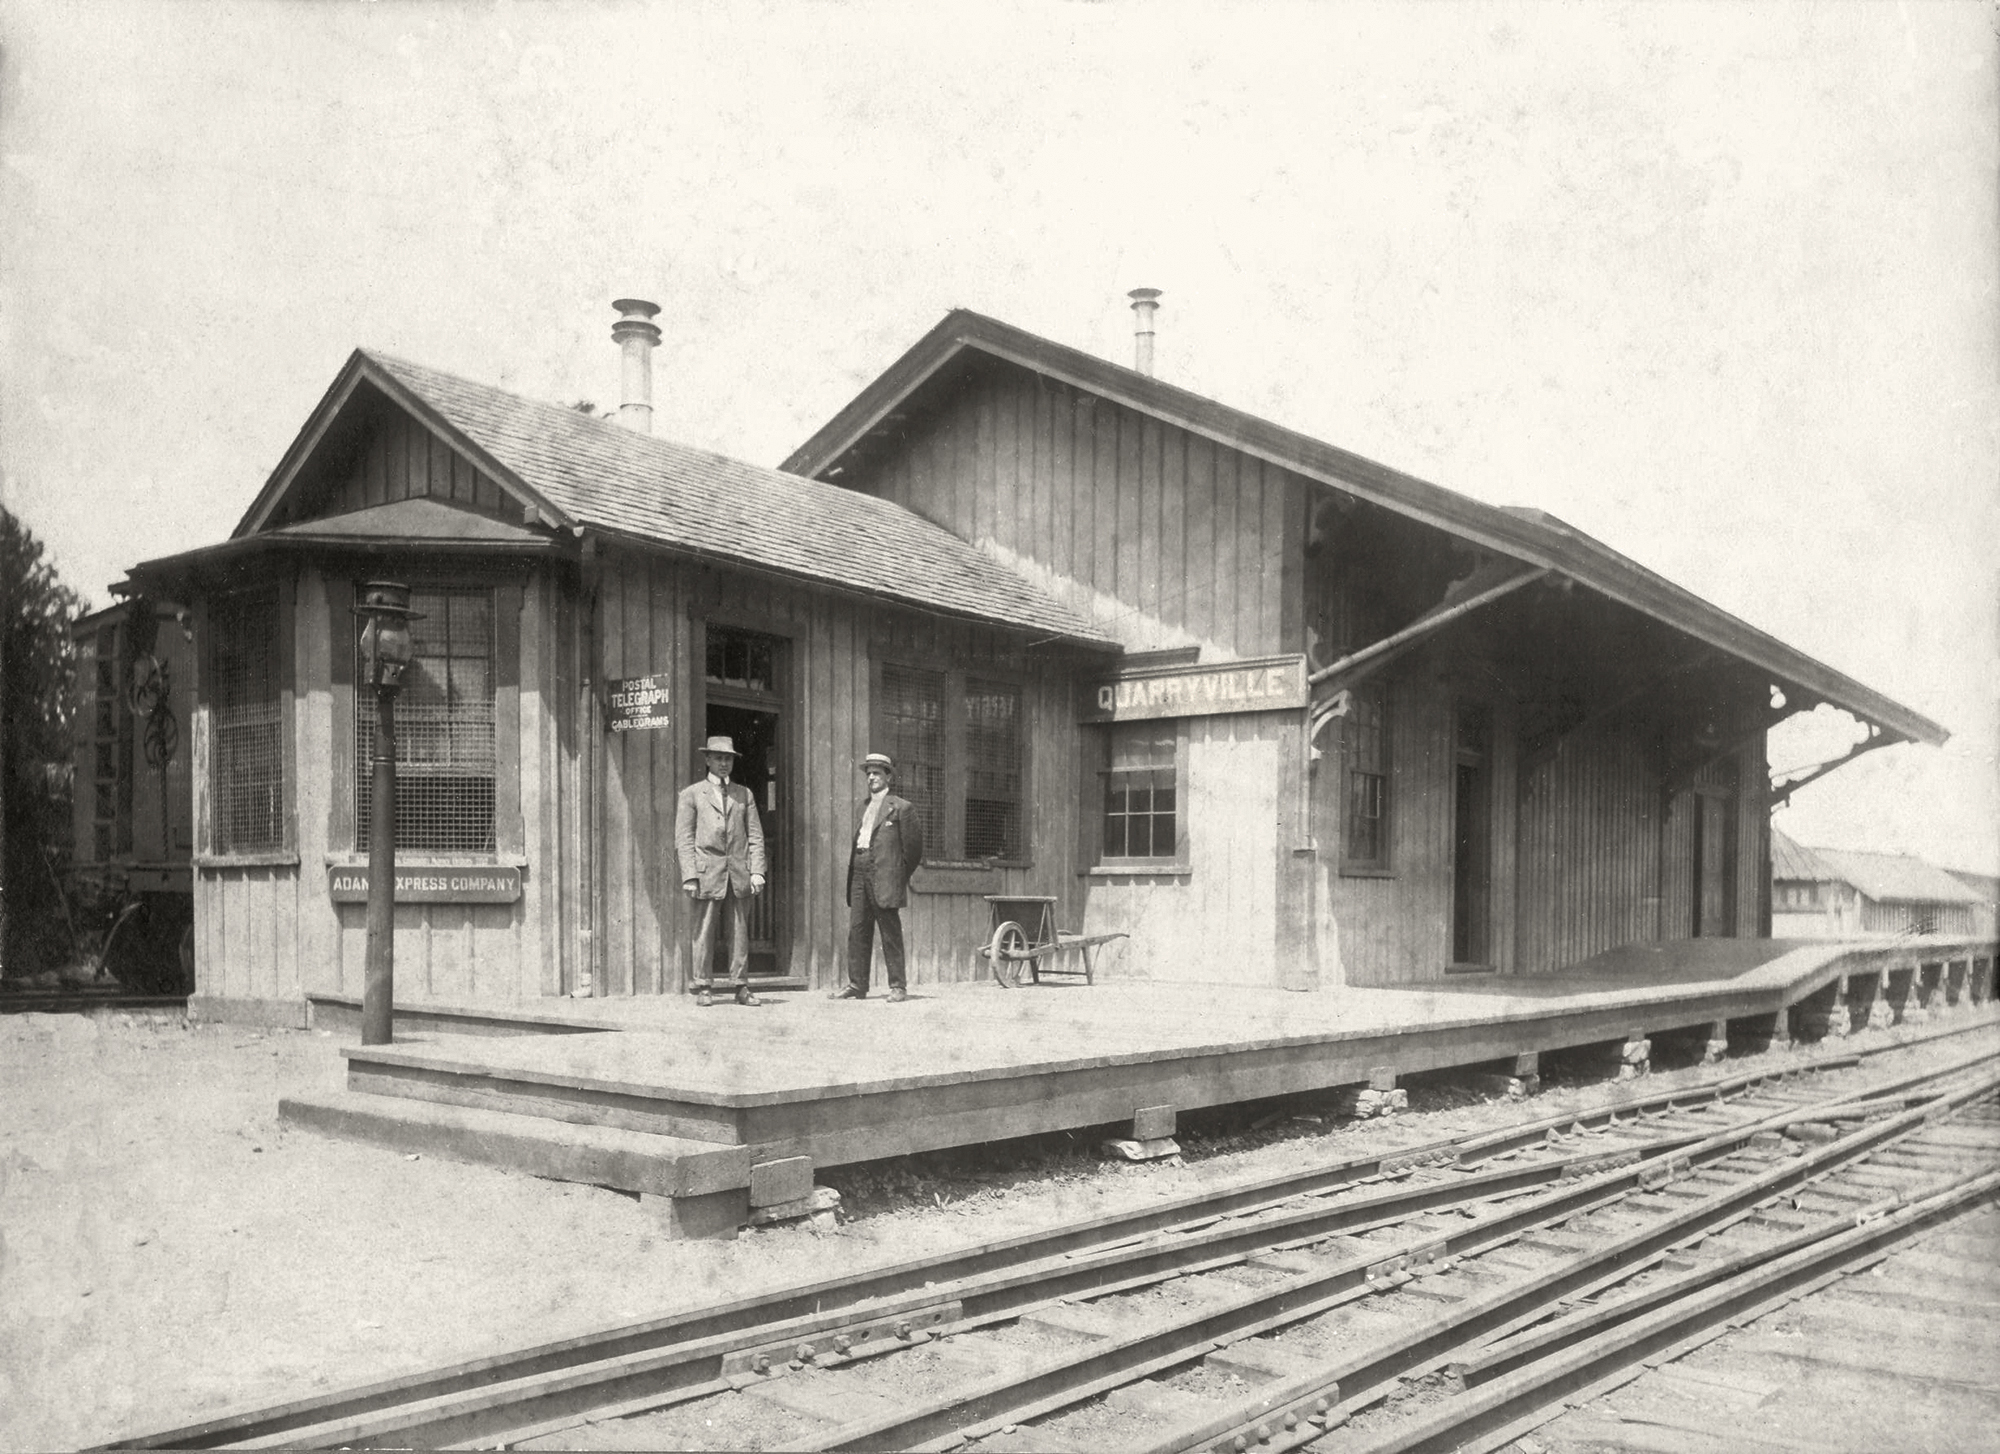 Quarryville Station, view before the Lancaster Oxford & Southern abandonment in 1917. Note the dual gauge trackage in the foreground, an area shared by the LO&S and the PRR. Image Walter G. Minnich Jr. collection, Southern Lancaster County Historical Society